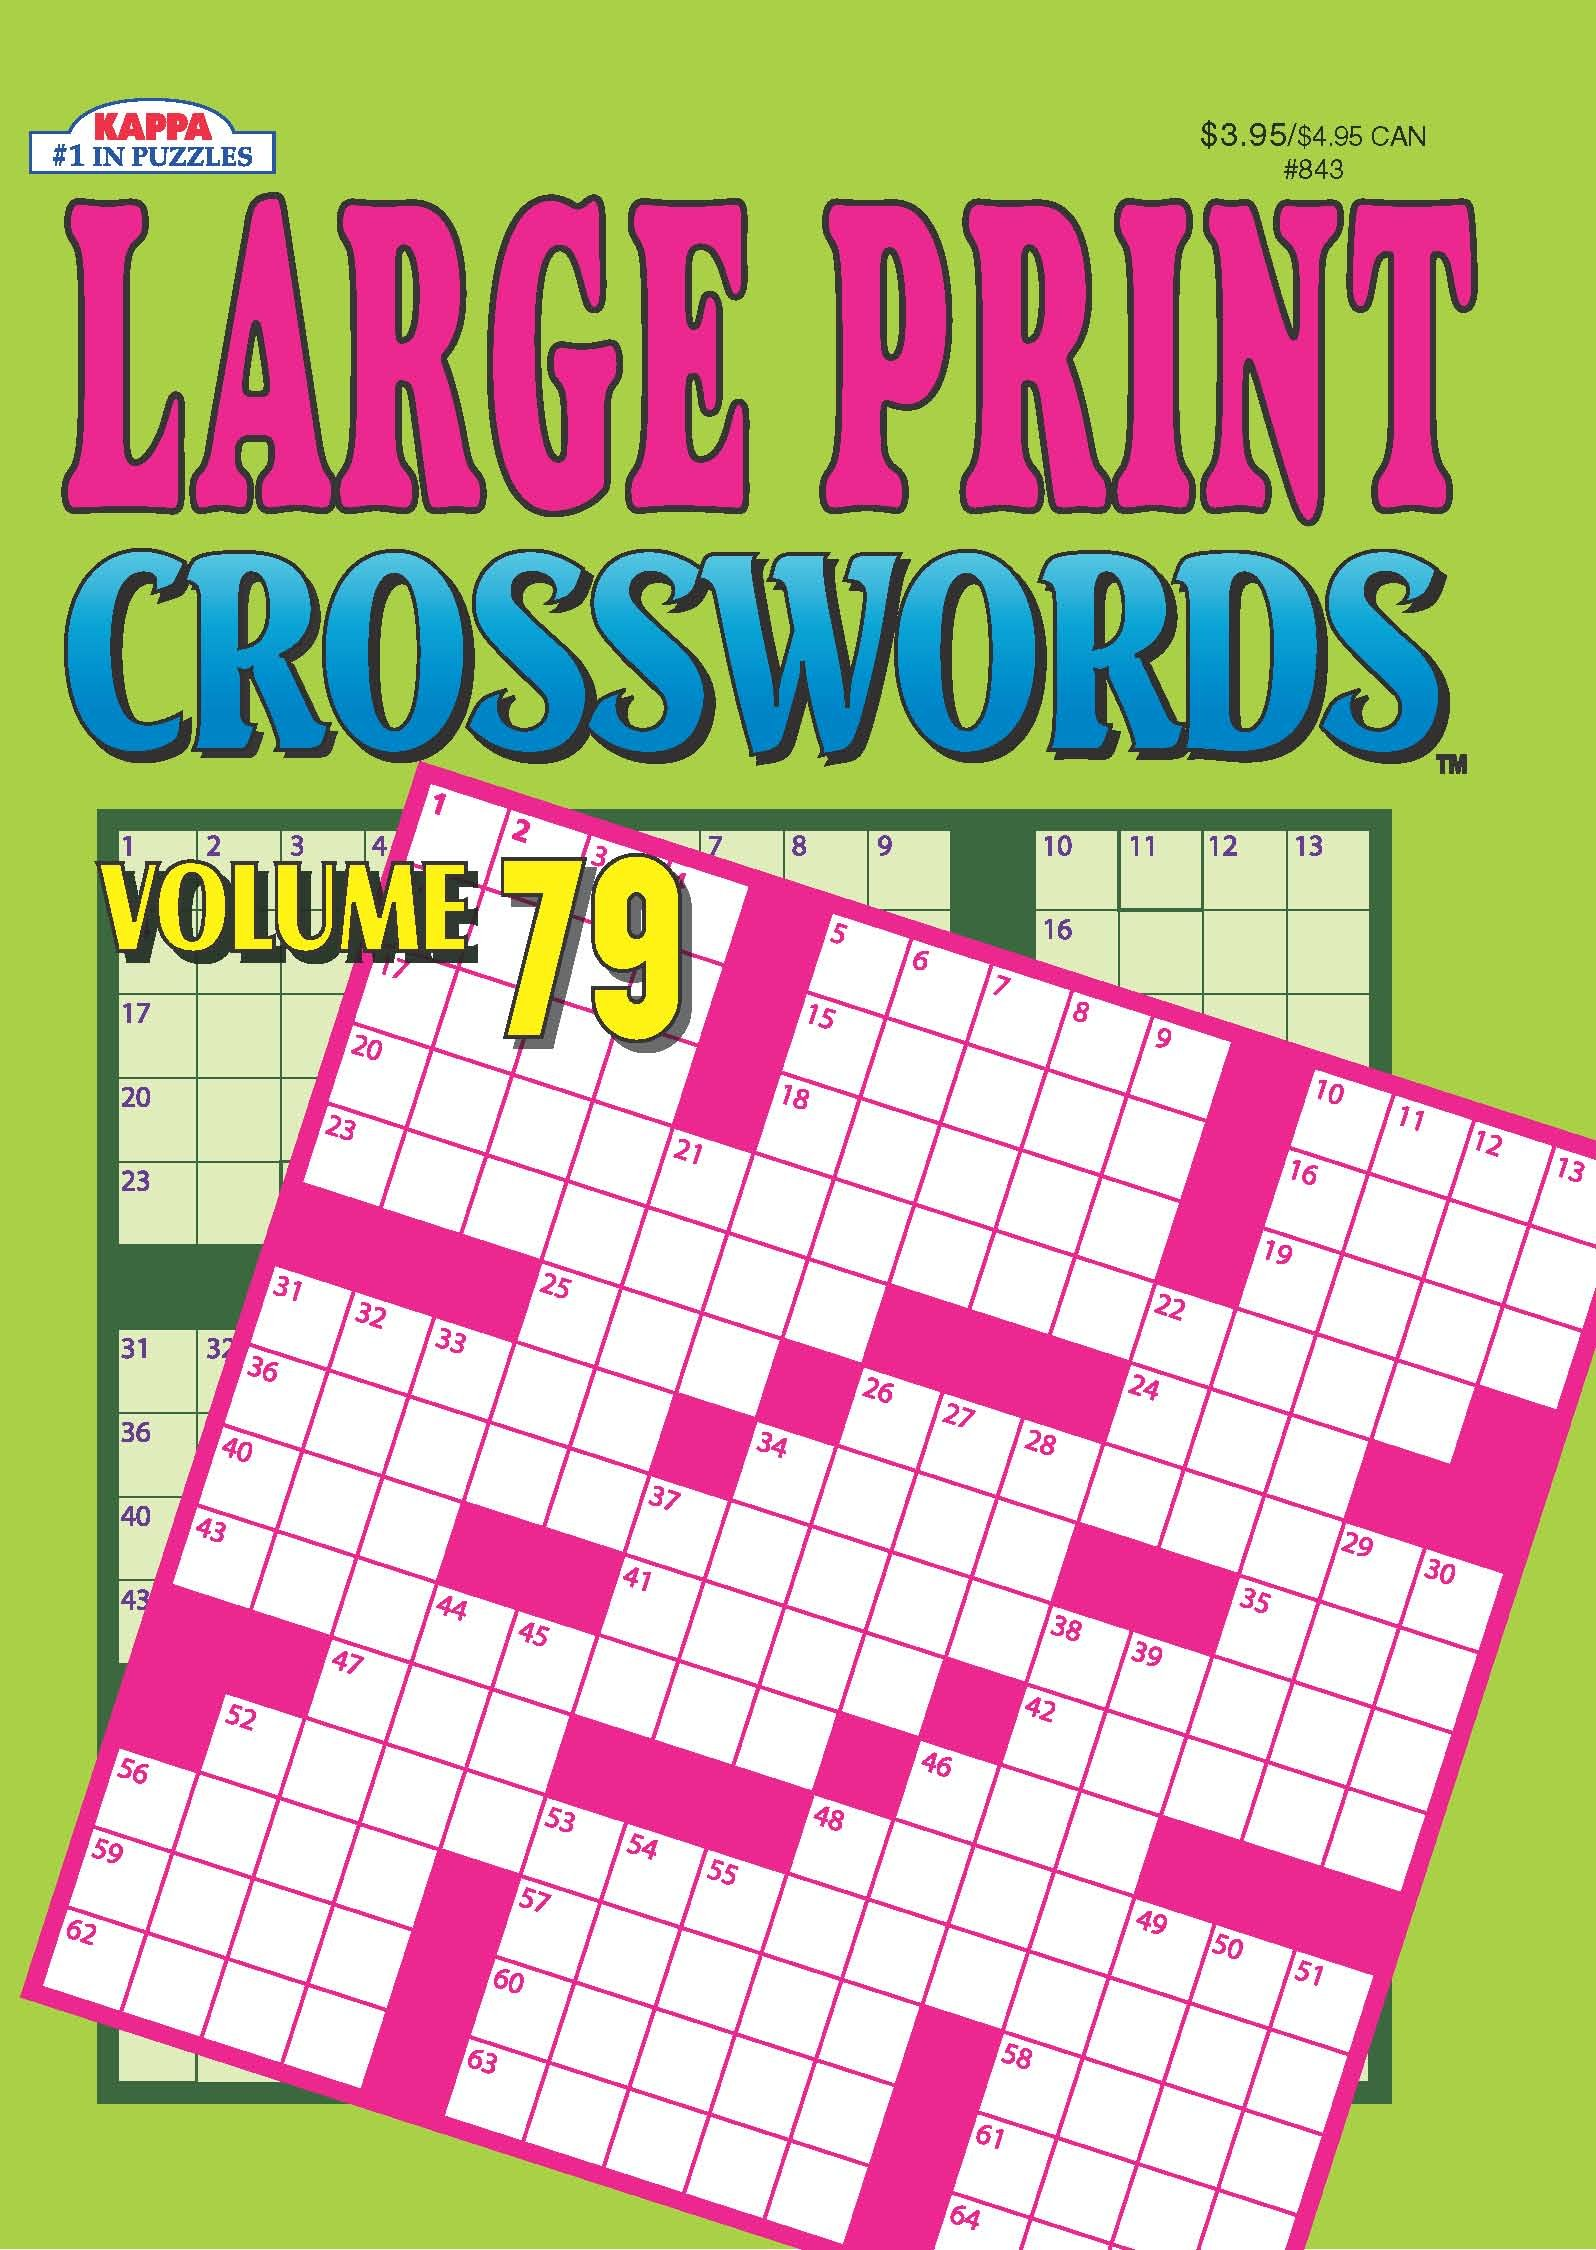 Large Print Crosswords Puzzle Book product image